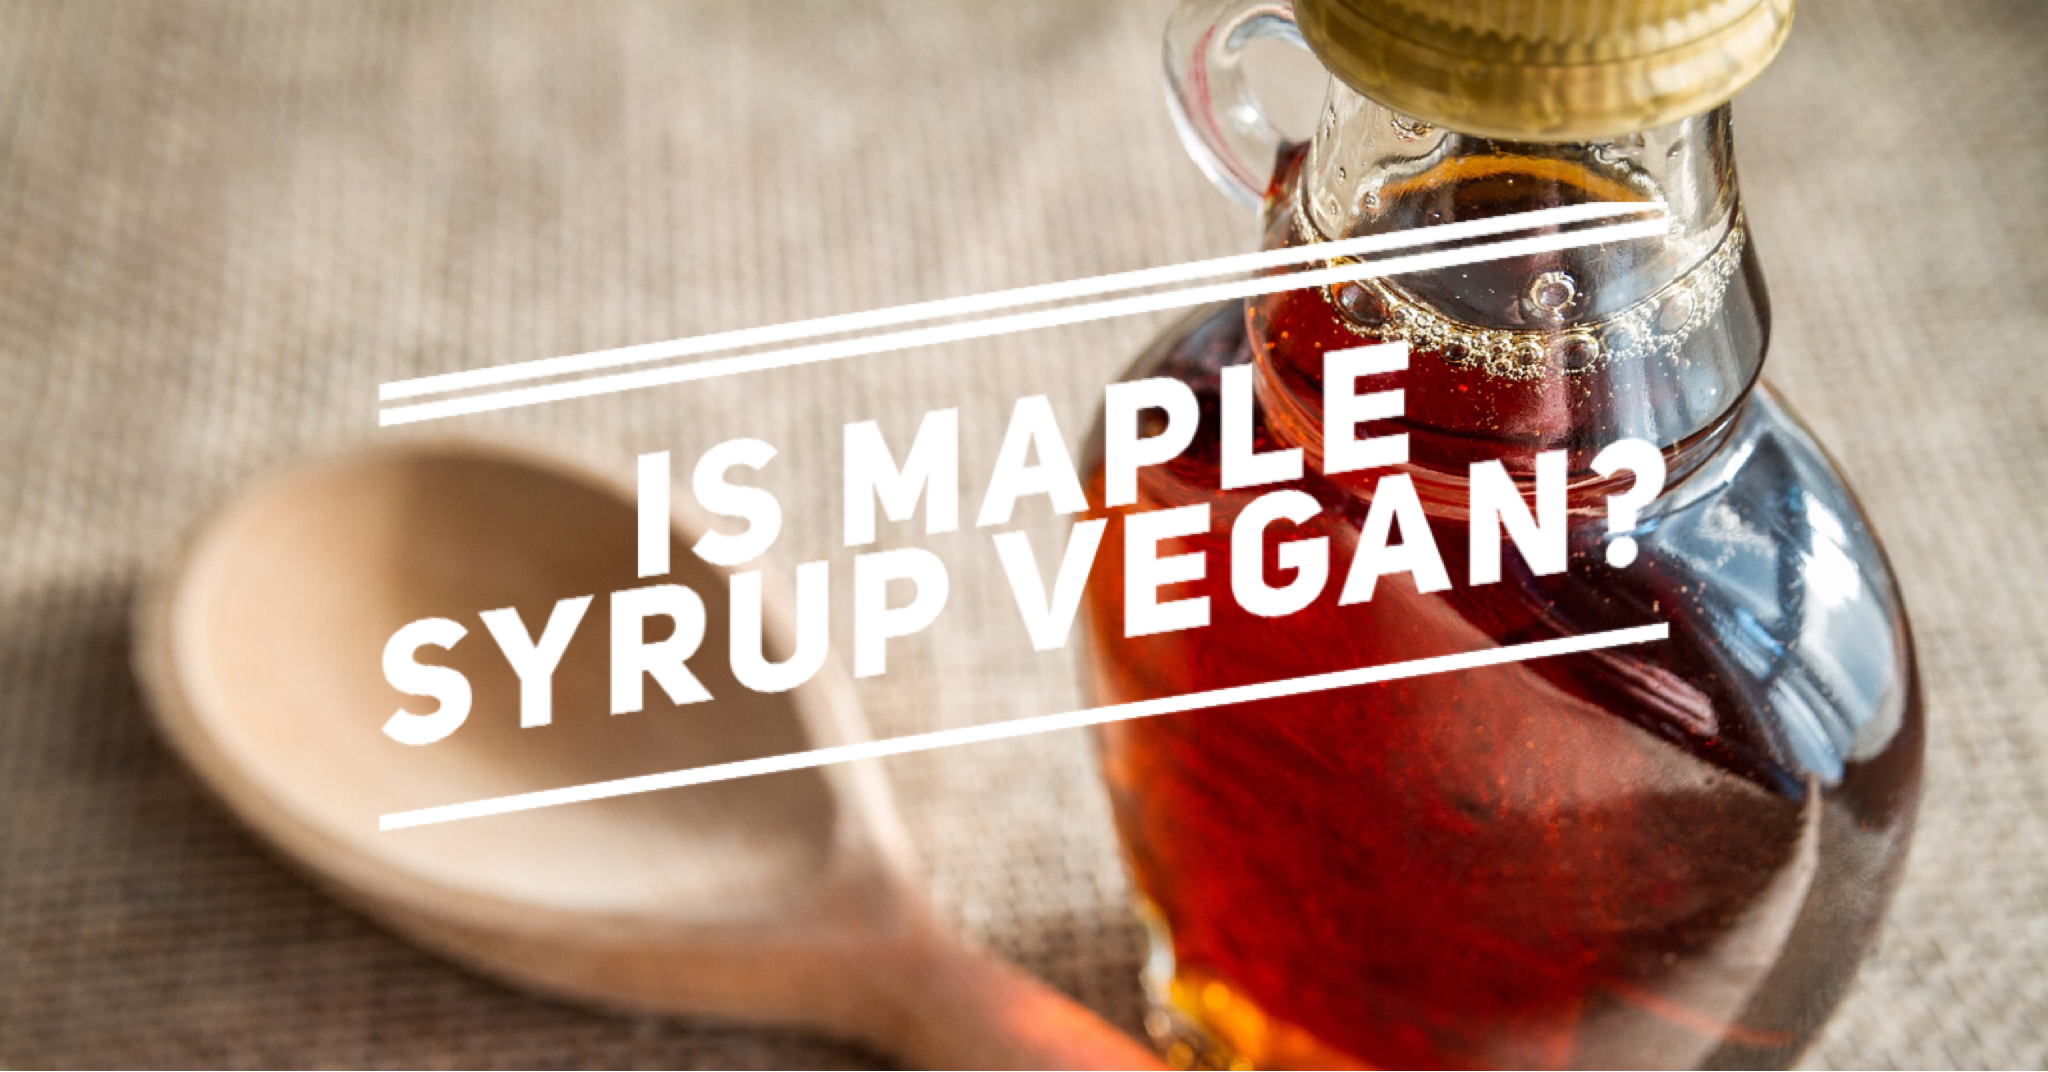 is maple syrup vegan?